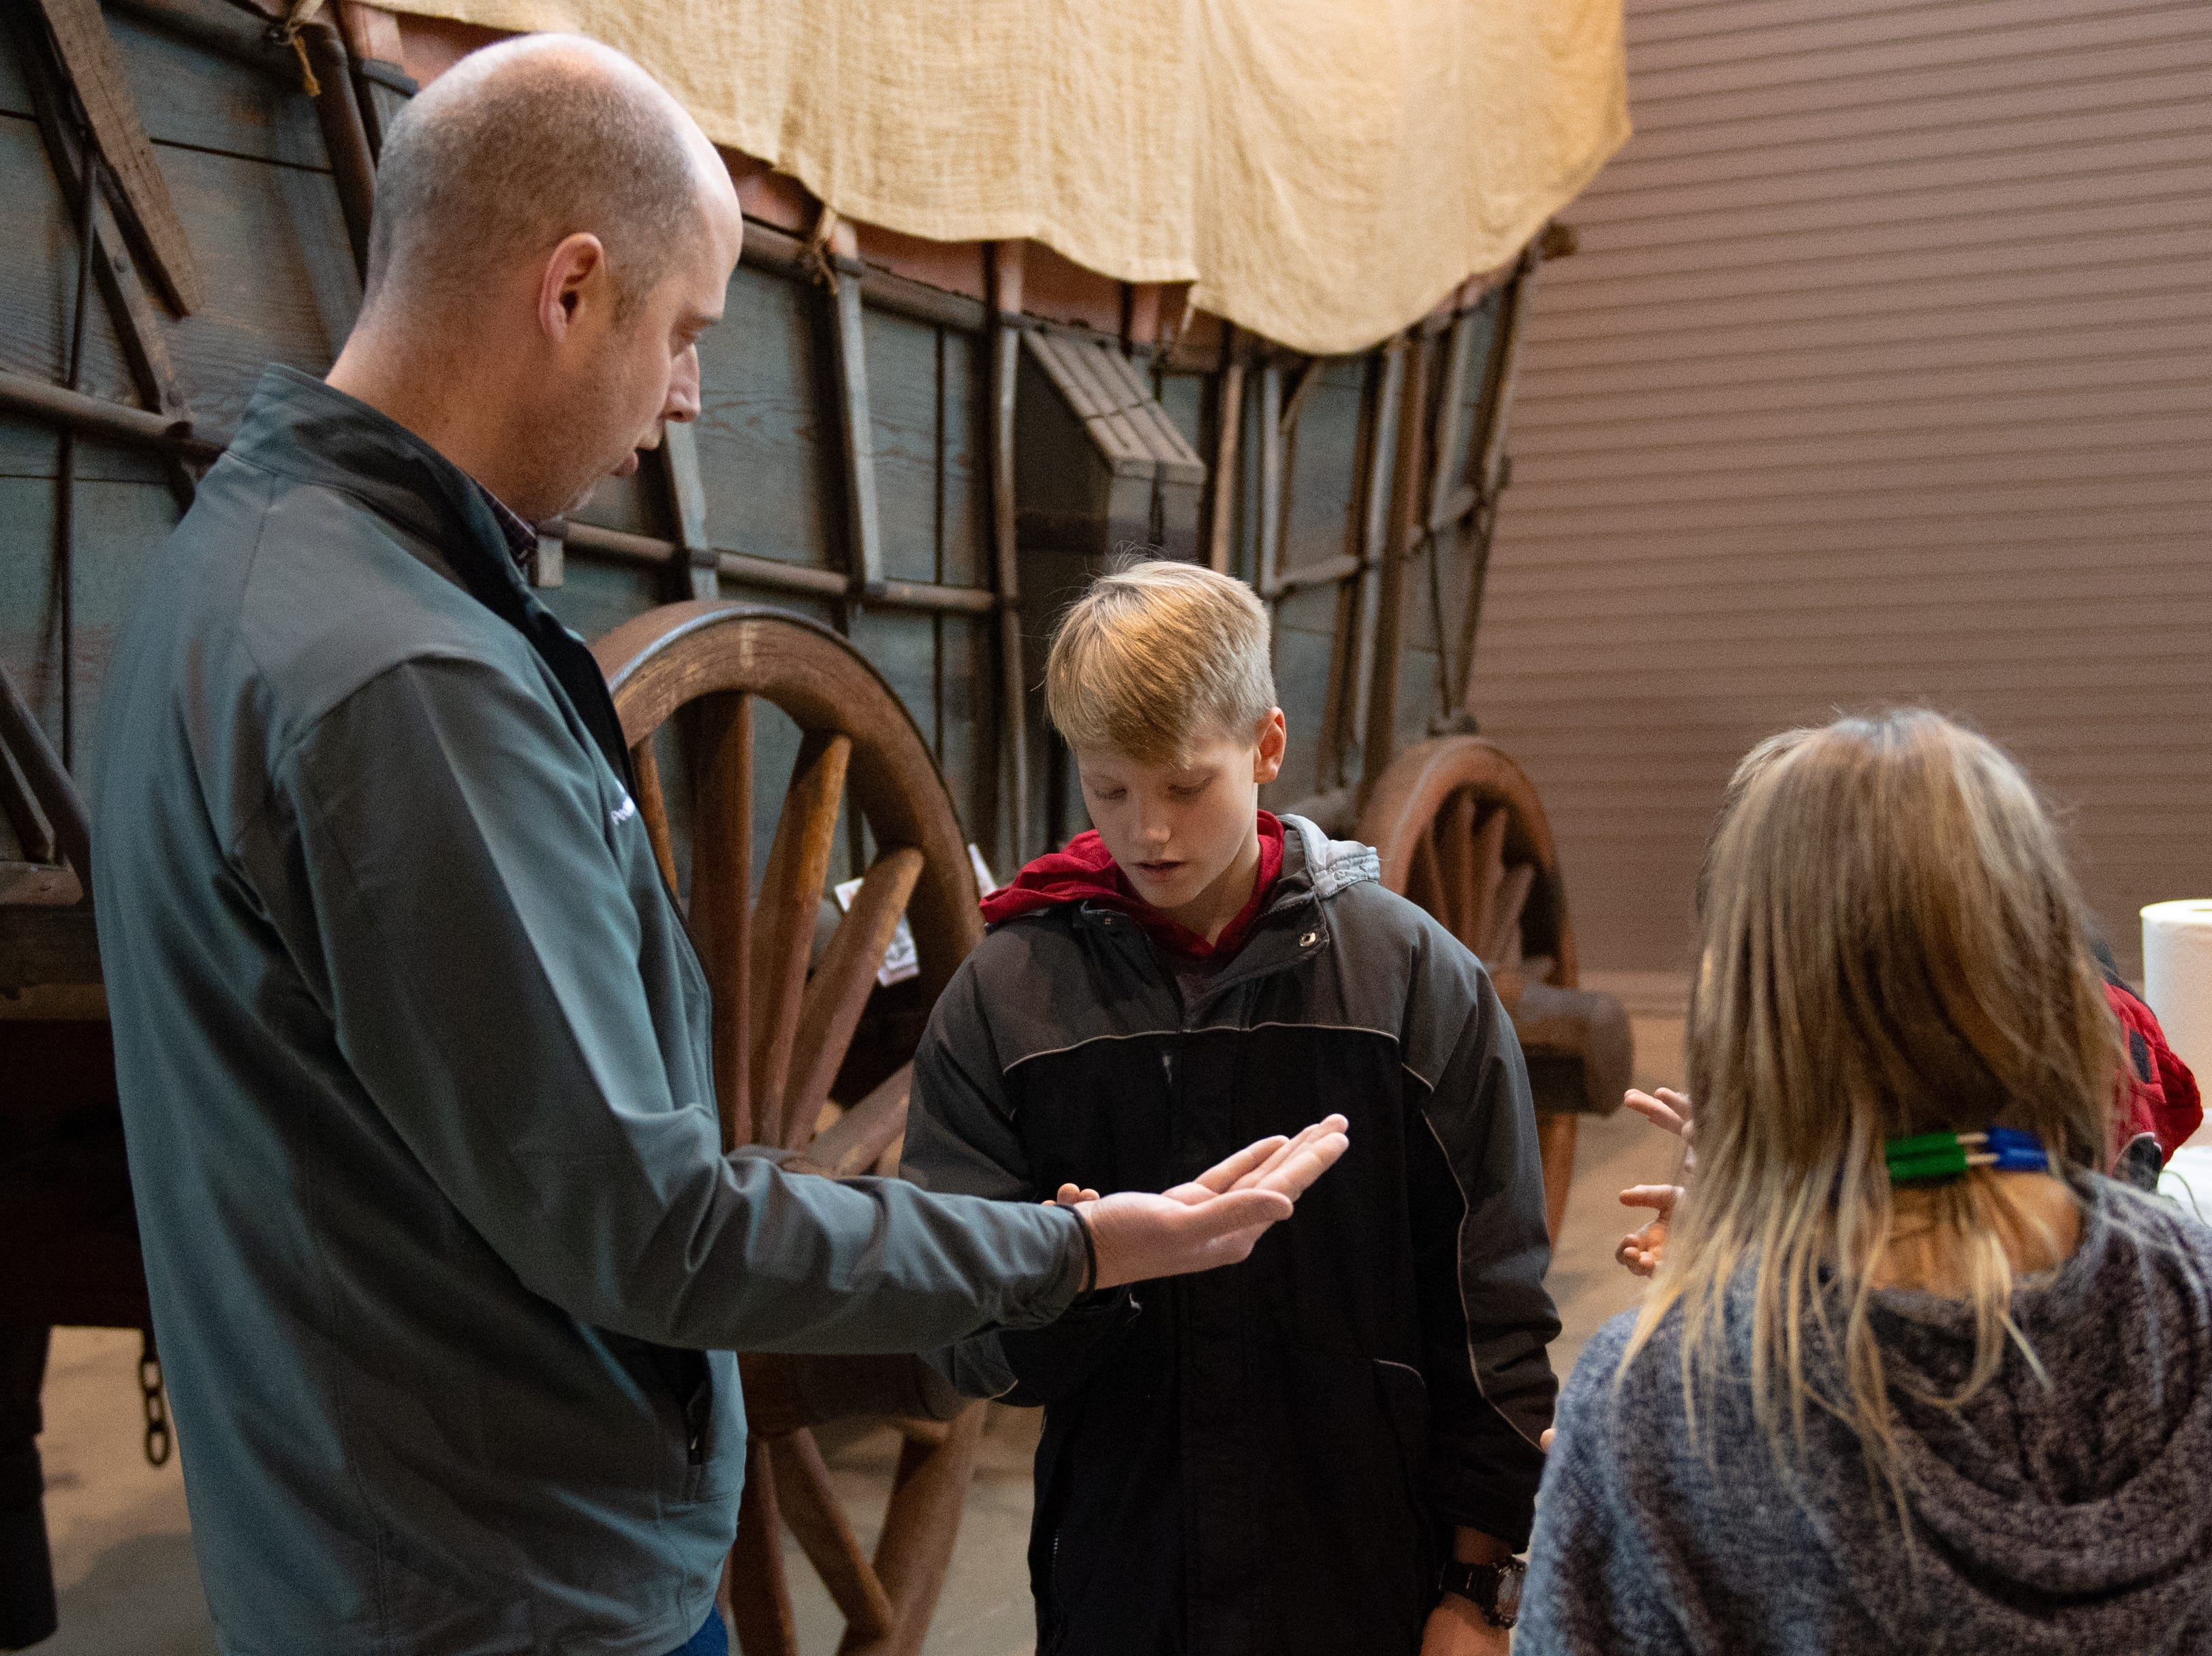 On December 28, 2018, The York County History Center celebrated health and wellness by hosting Family Activity Day at the York Agricultural and Industrial Museum.